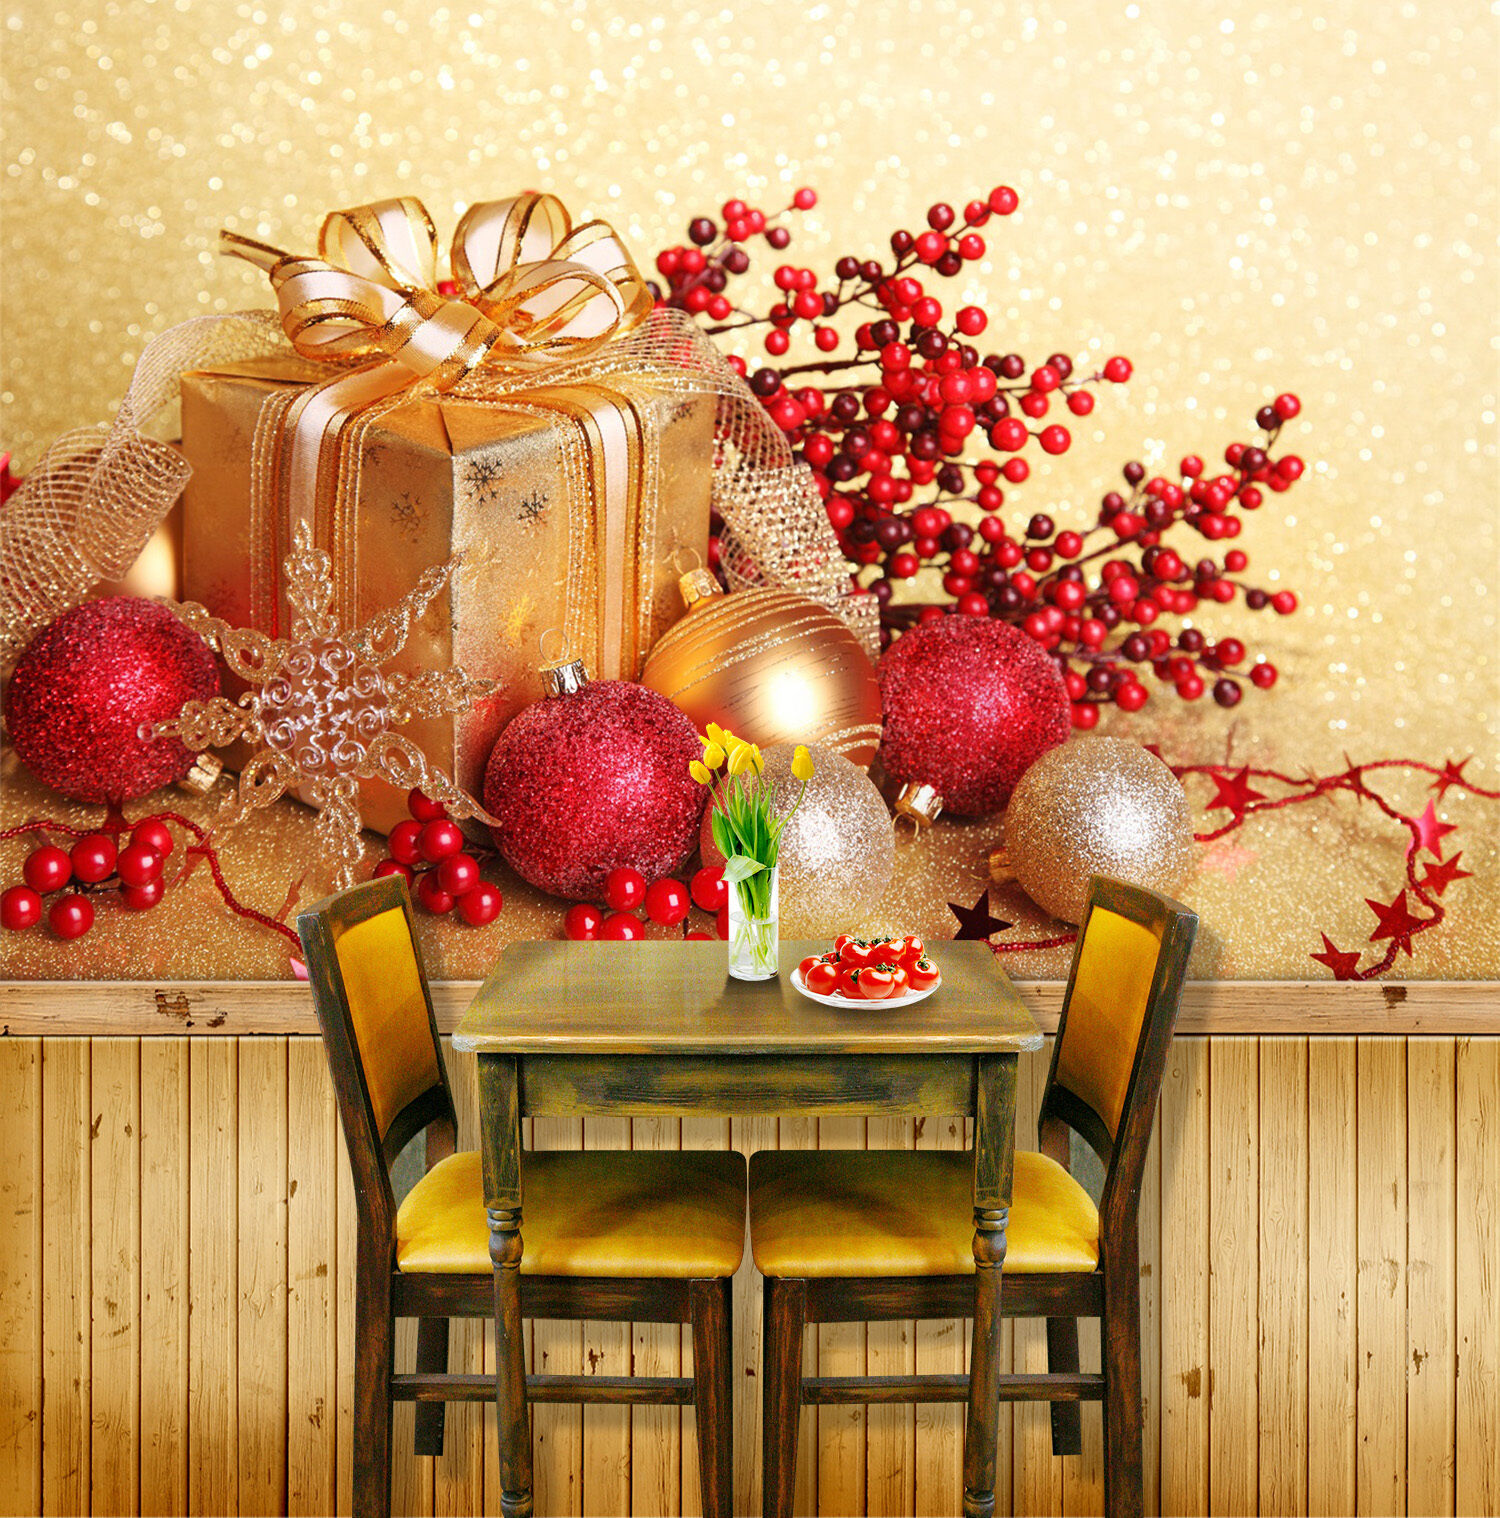 3D Receive Christmas Gifts 3 Wall Paper Wall Print Decal Wall Deco Indoor Wall